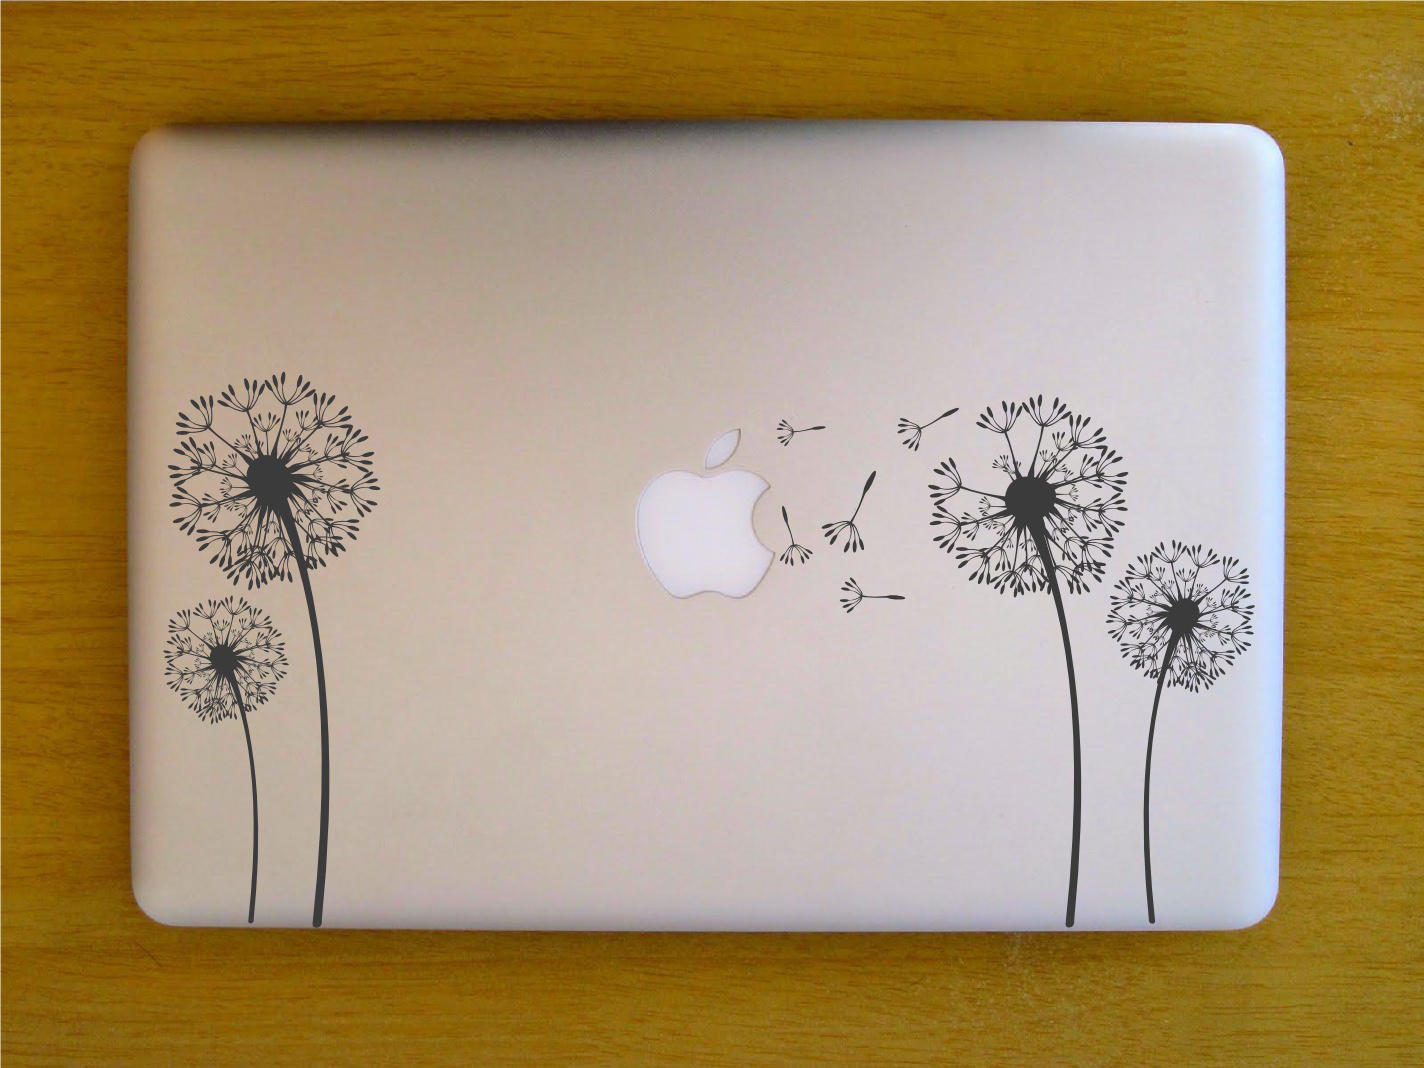 Decal Sticker MacBook Pro NonRetina DadelionFlower by raditeputut